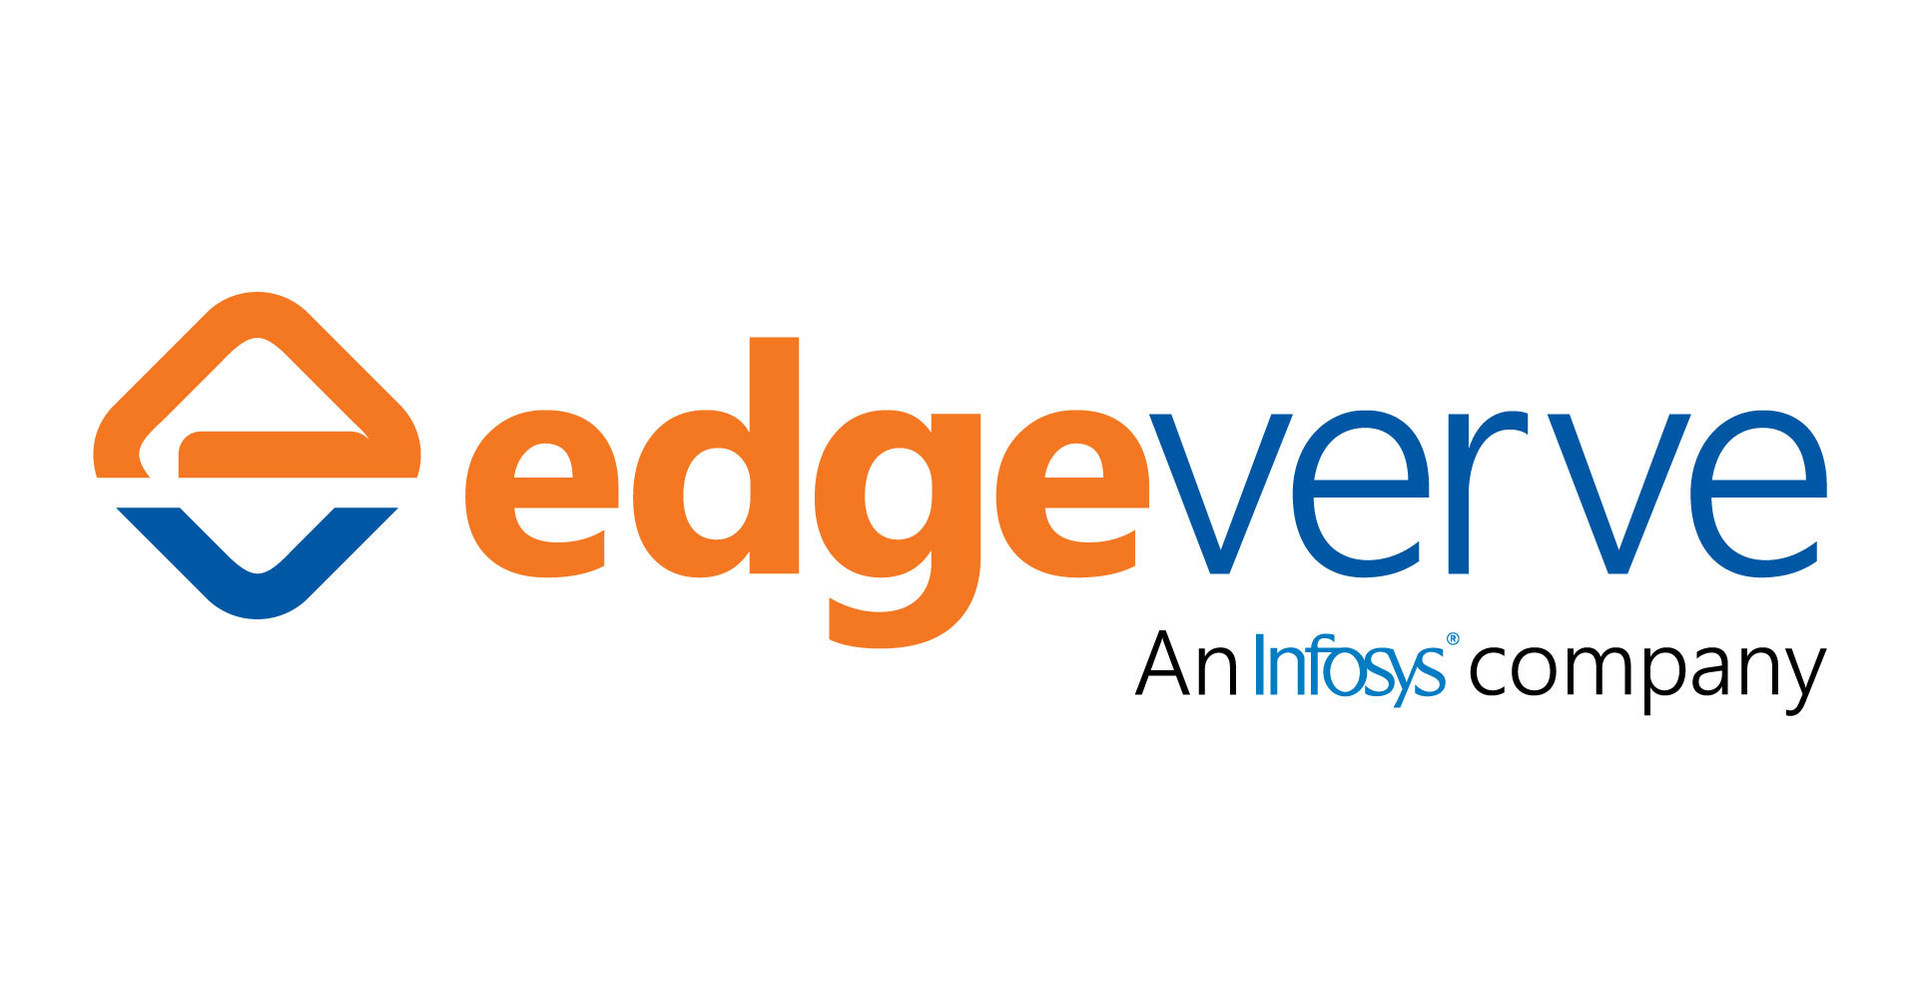 EdgeVerve's AssistEdge 19.0 to Empower Human-Digital workforce to Build High-Performance Enterprise